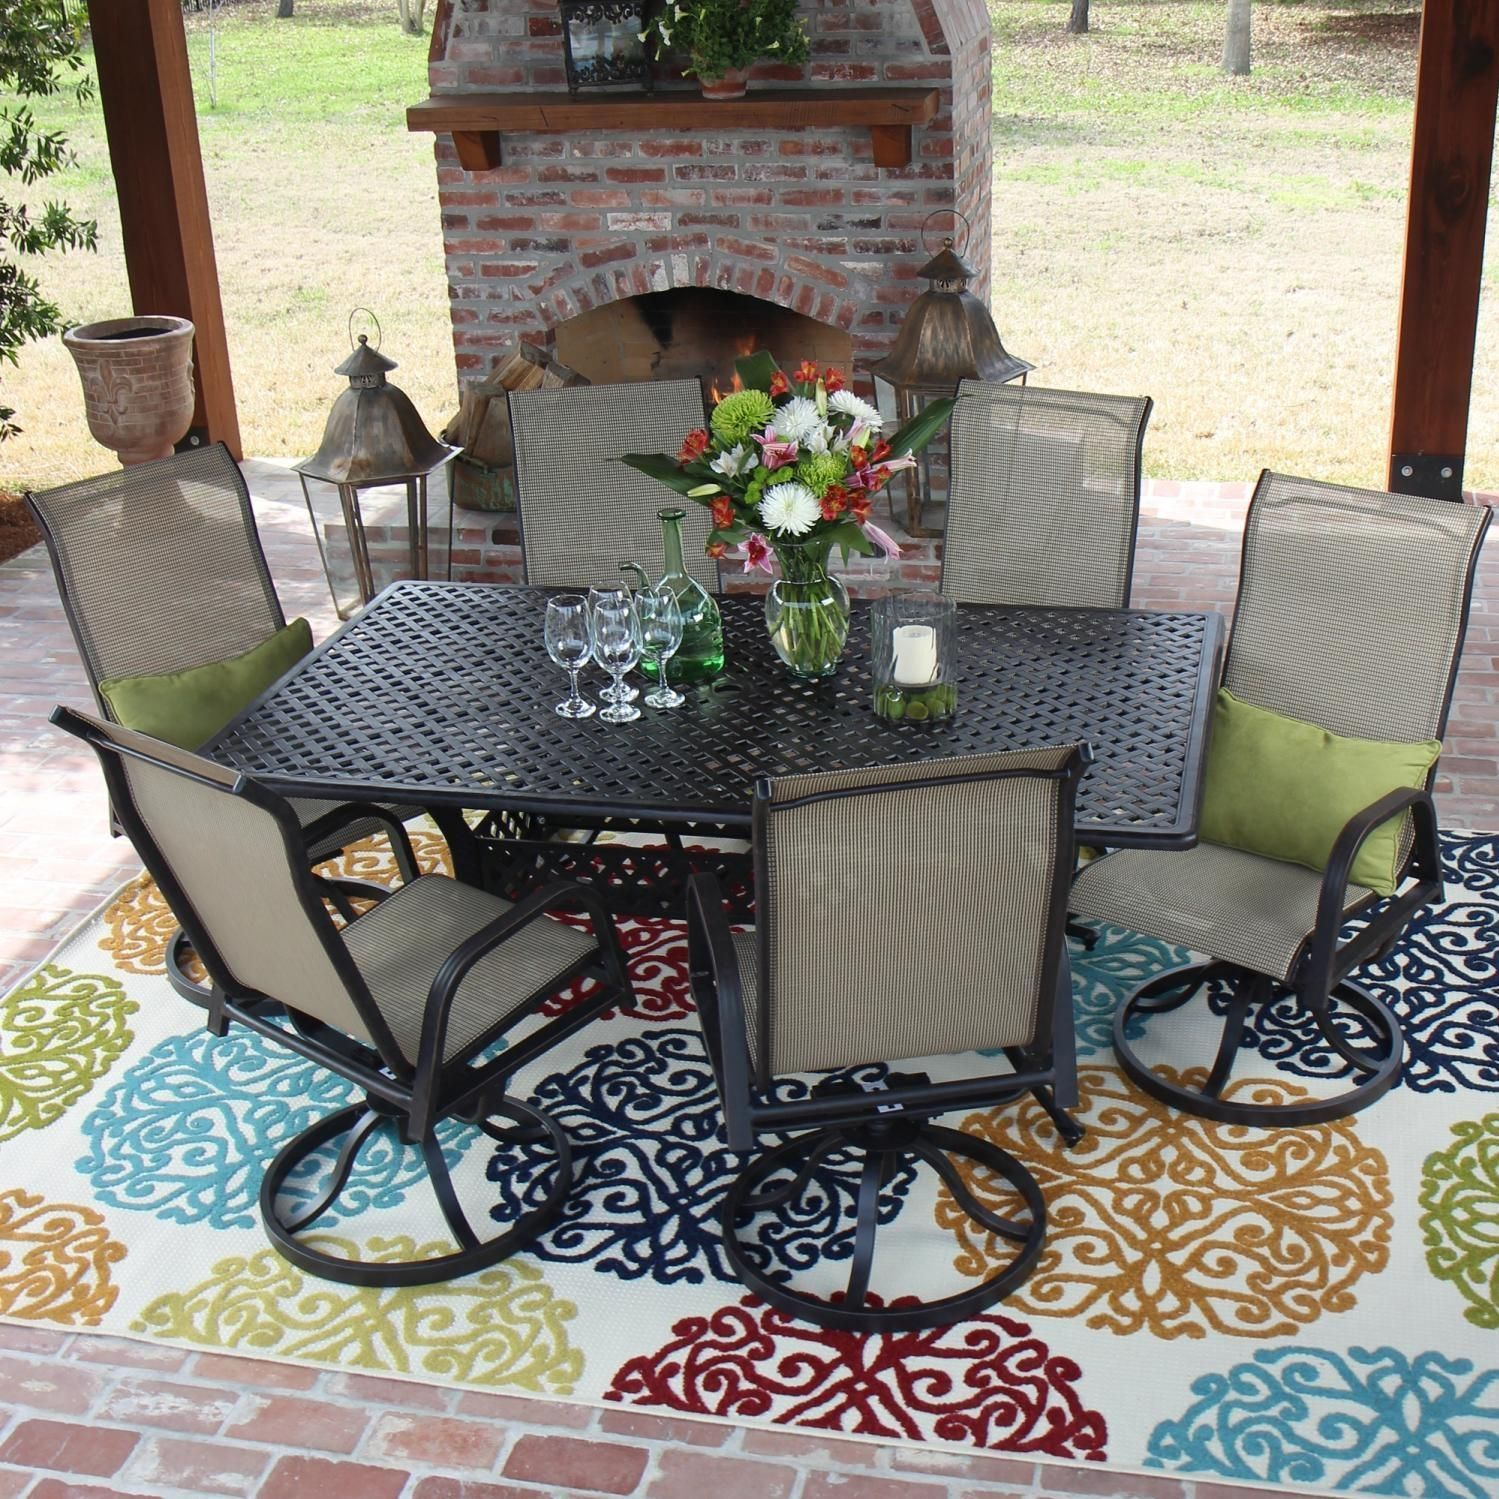 ultimate patio $1350 overstock Casual simple and relaxed